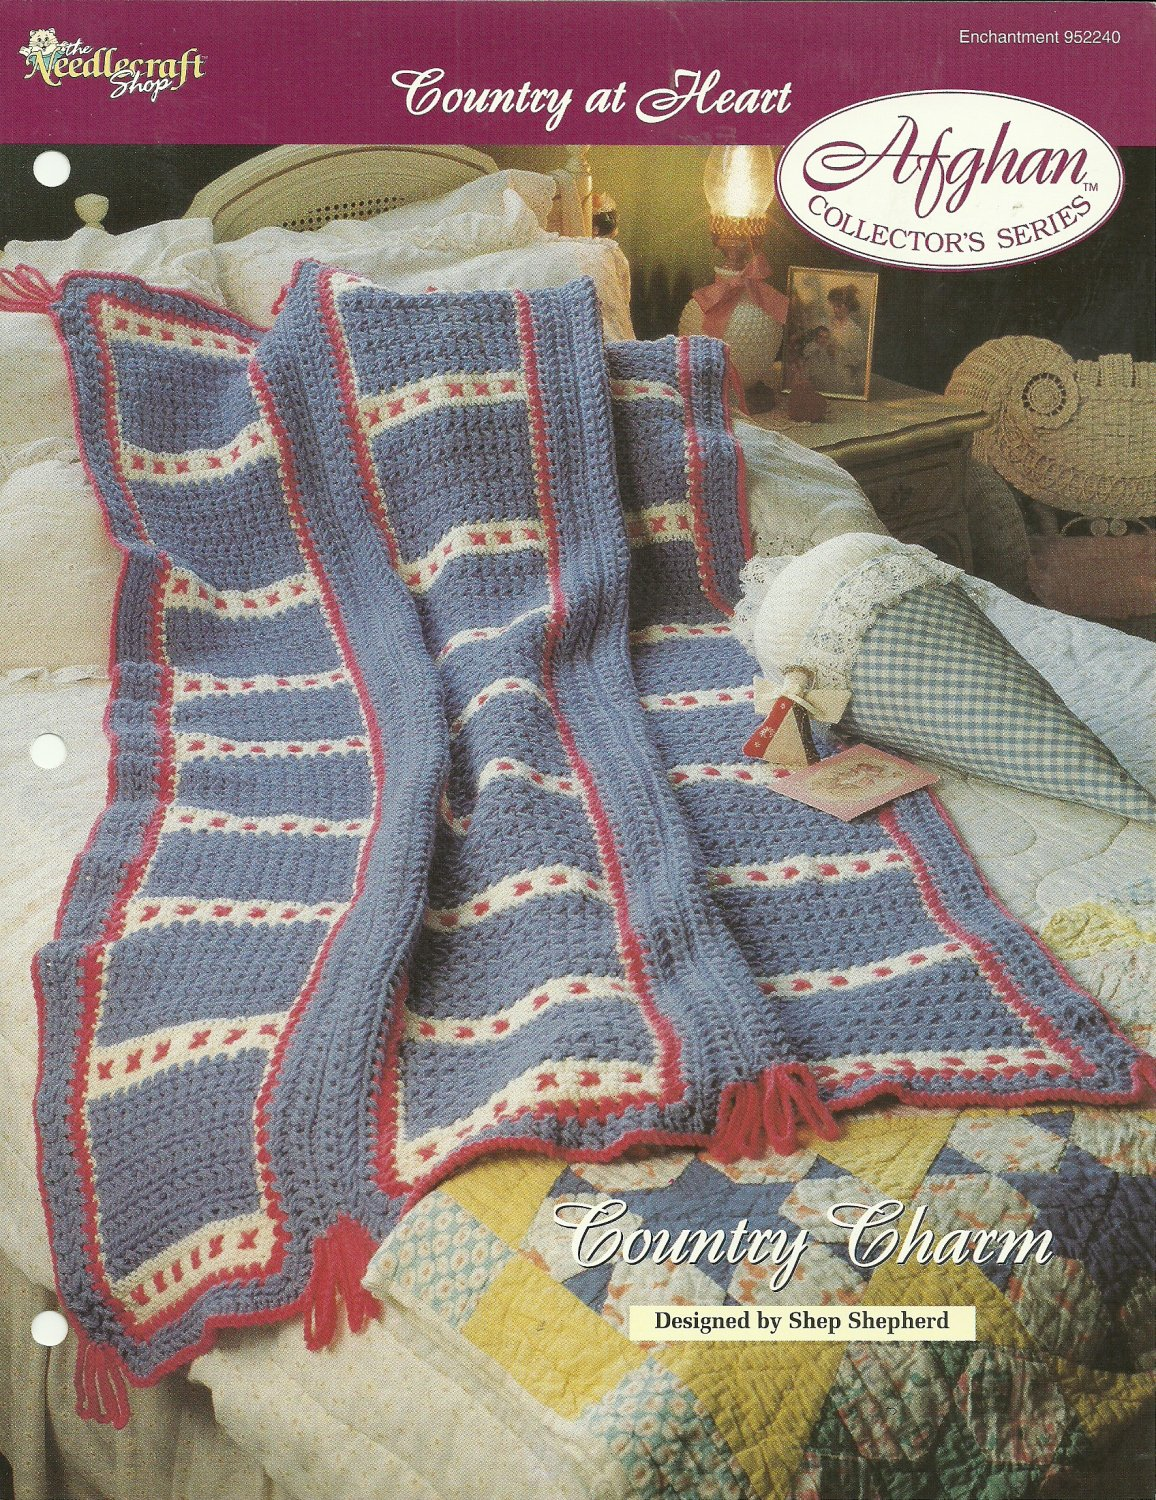 *Crochet Afghan Collector's Series - Country Charm